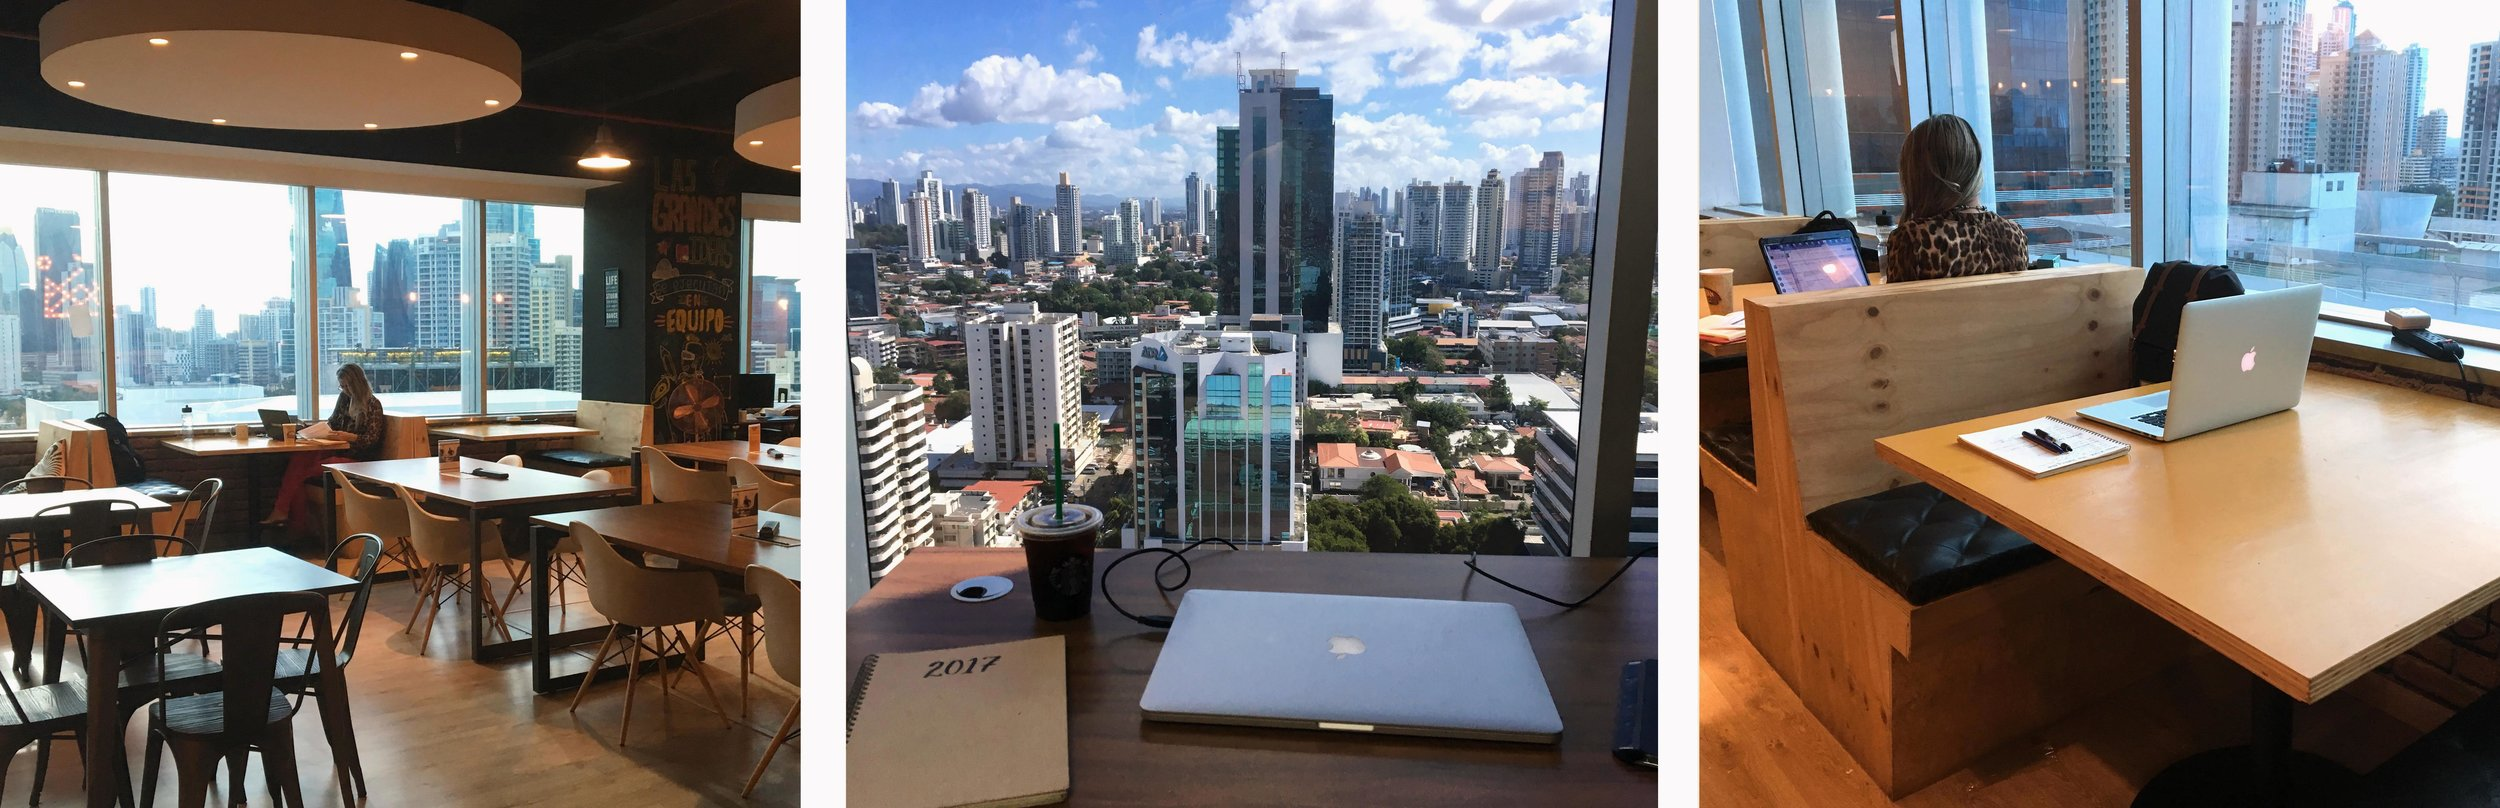 Workings office spaces in   Panama City